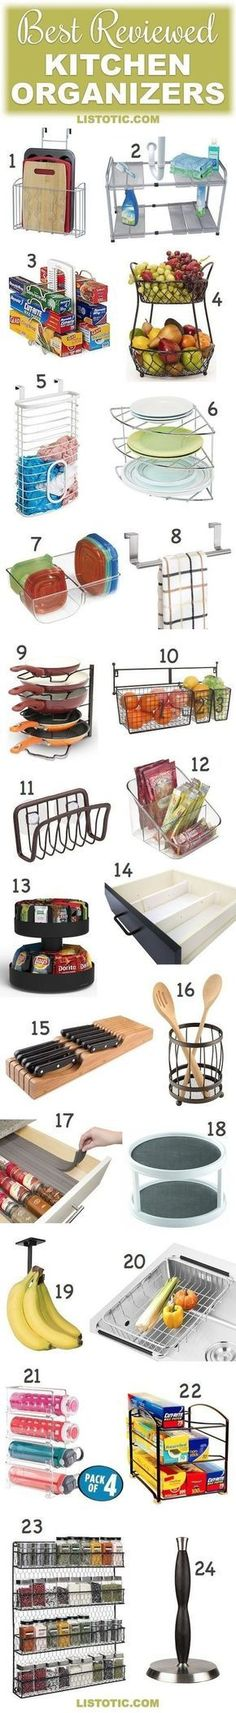 Kitchen Organization Ideas   The best reviewed kitchen organizers! These are great for the pantry, cabinets or countertops... especially for small kitchens.